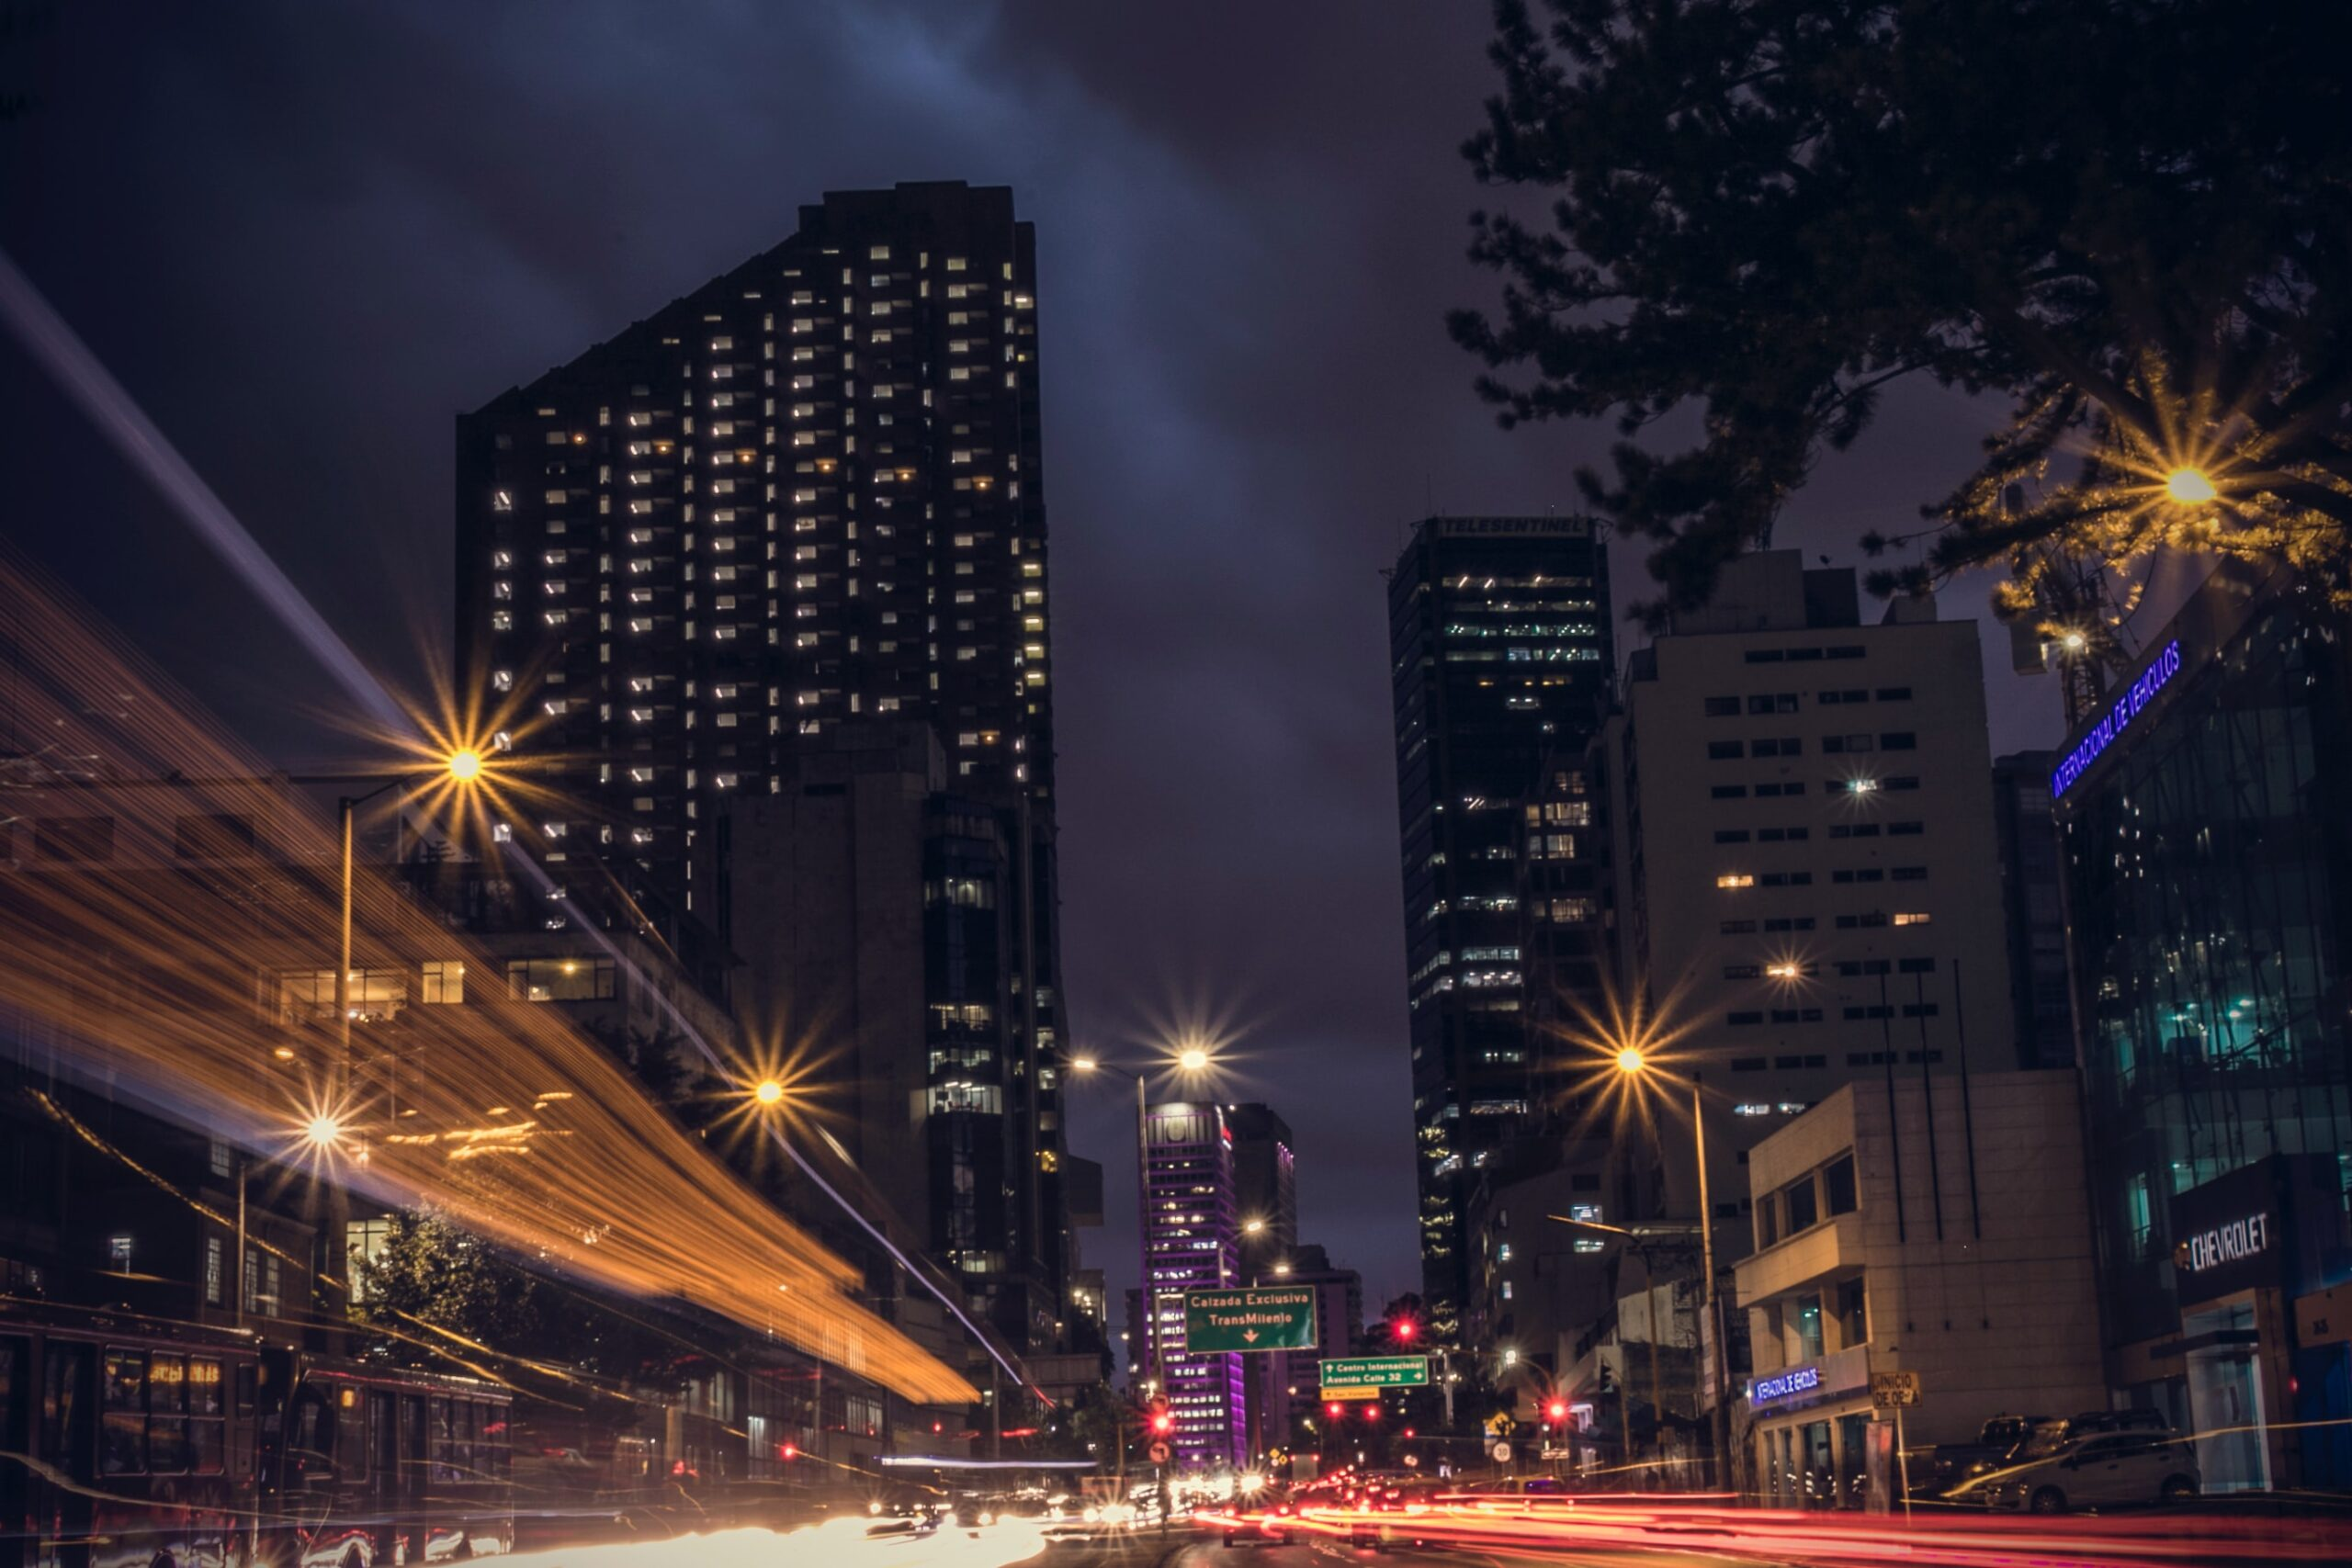 Welcome to Part 10 of theFirm of Her Own Series, which highlights the career of AMI SIX member Paula Echeverri Montes. Image of Bogota, Colombia city and lights. Photo by AltaGamba @altagamba on Unsplash.